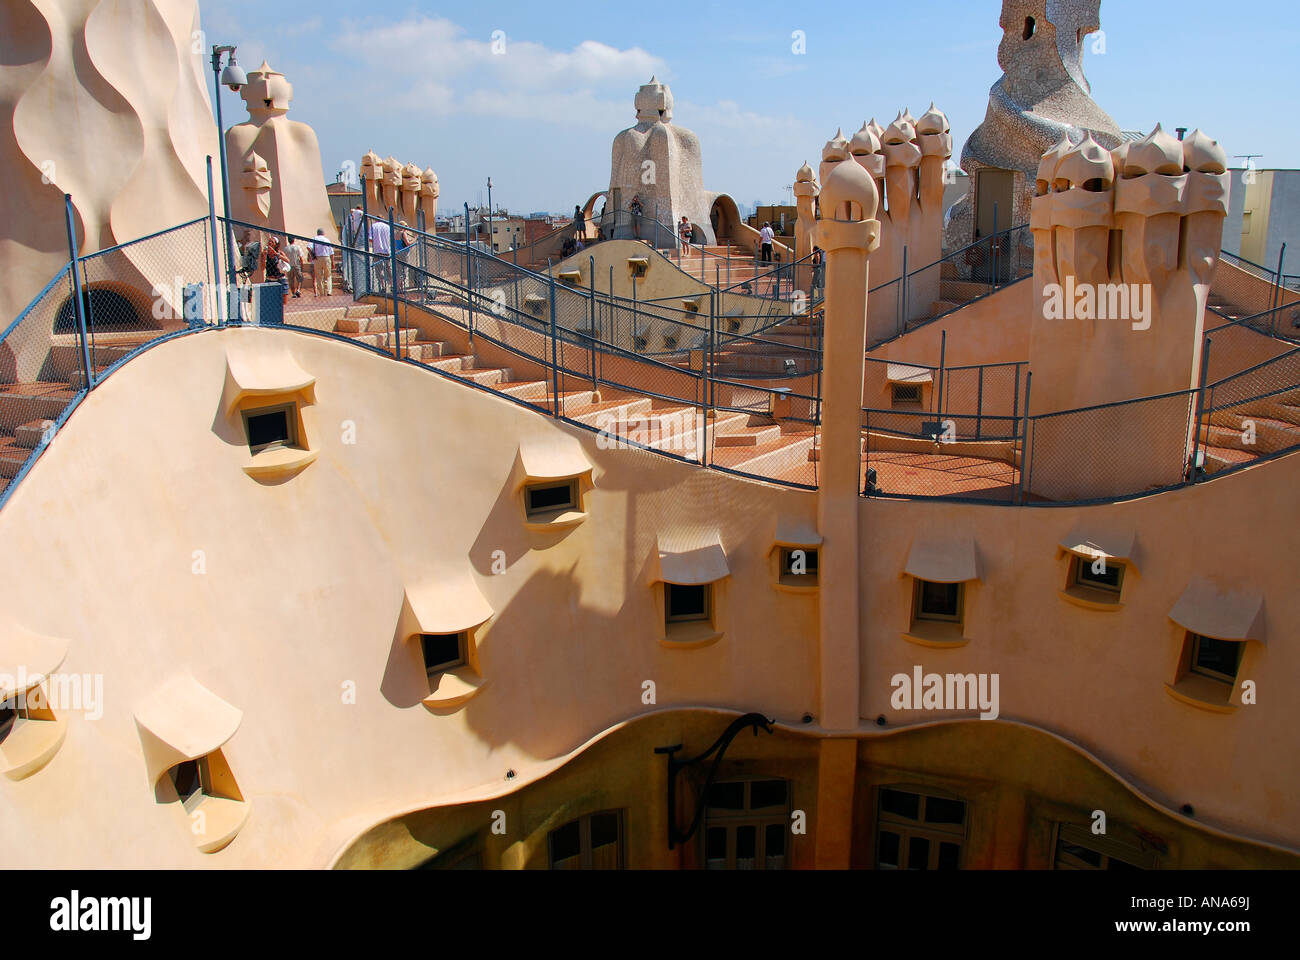 Rooftop walkways and chimneys of La Casa Mila, designed by Gaudi, La